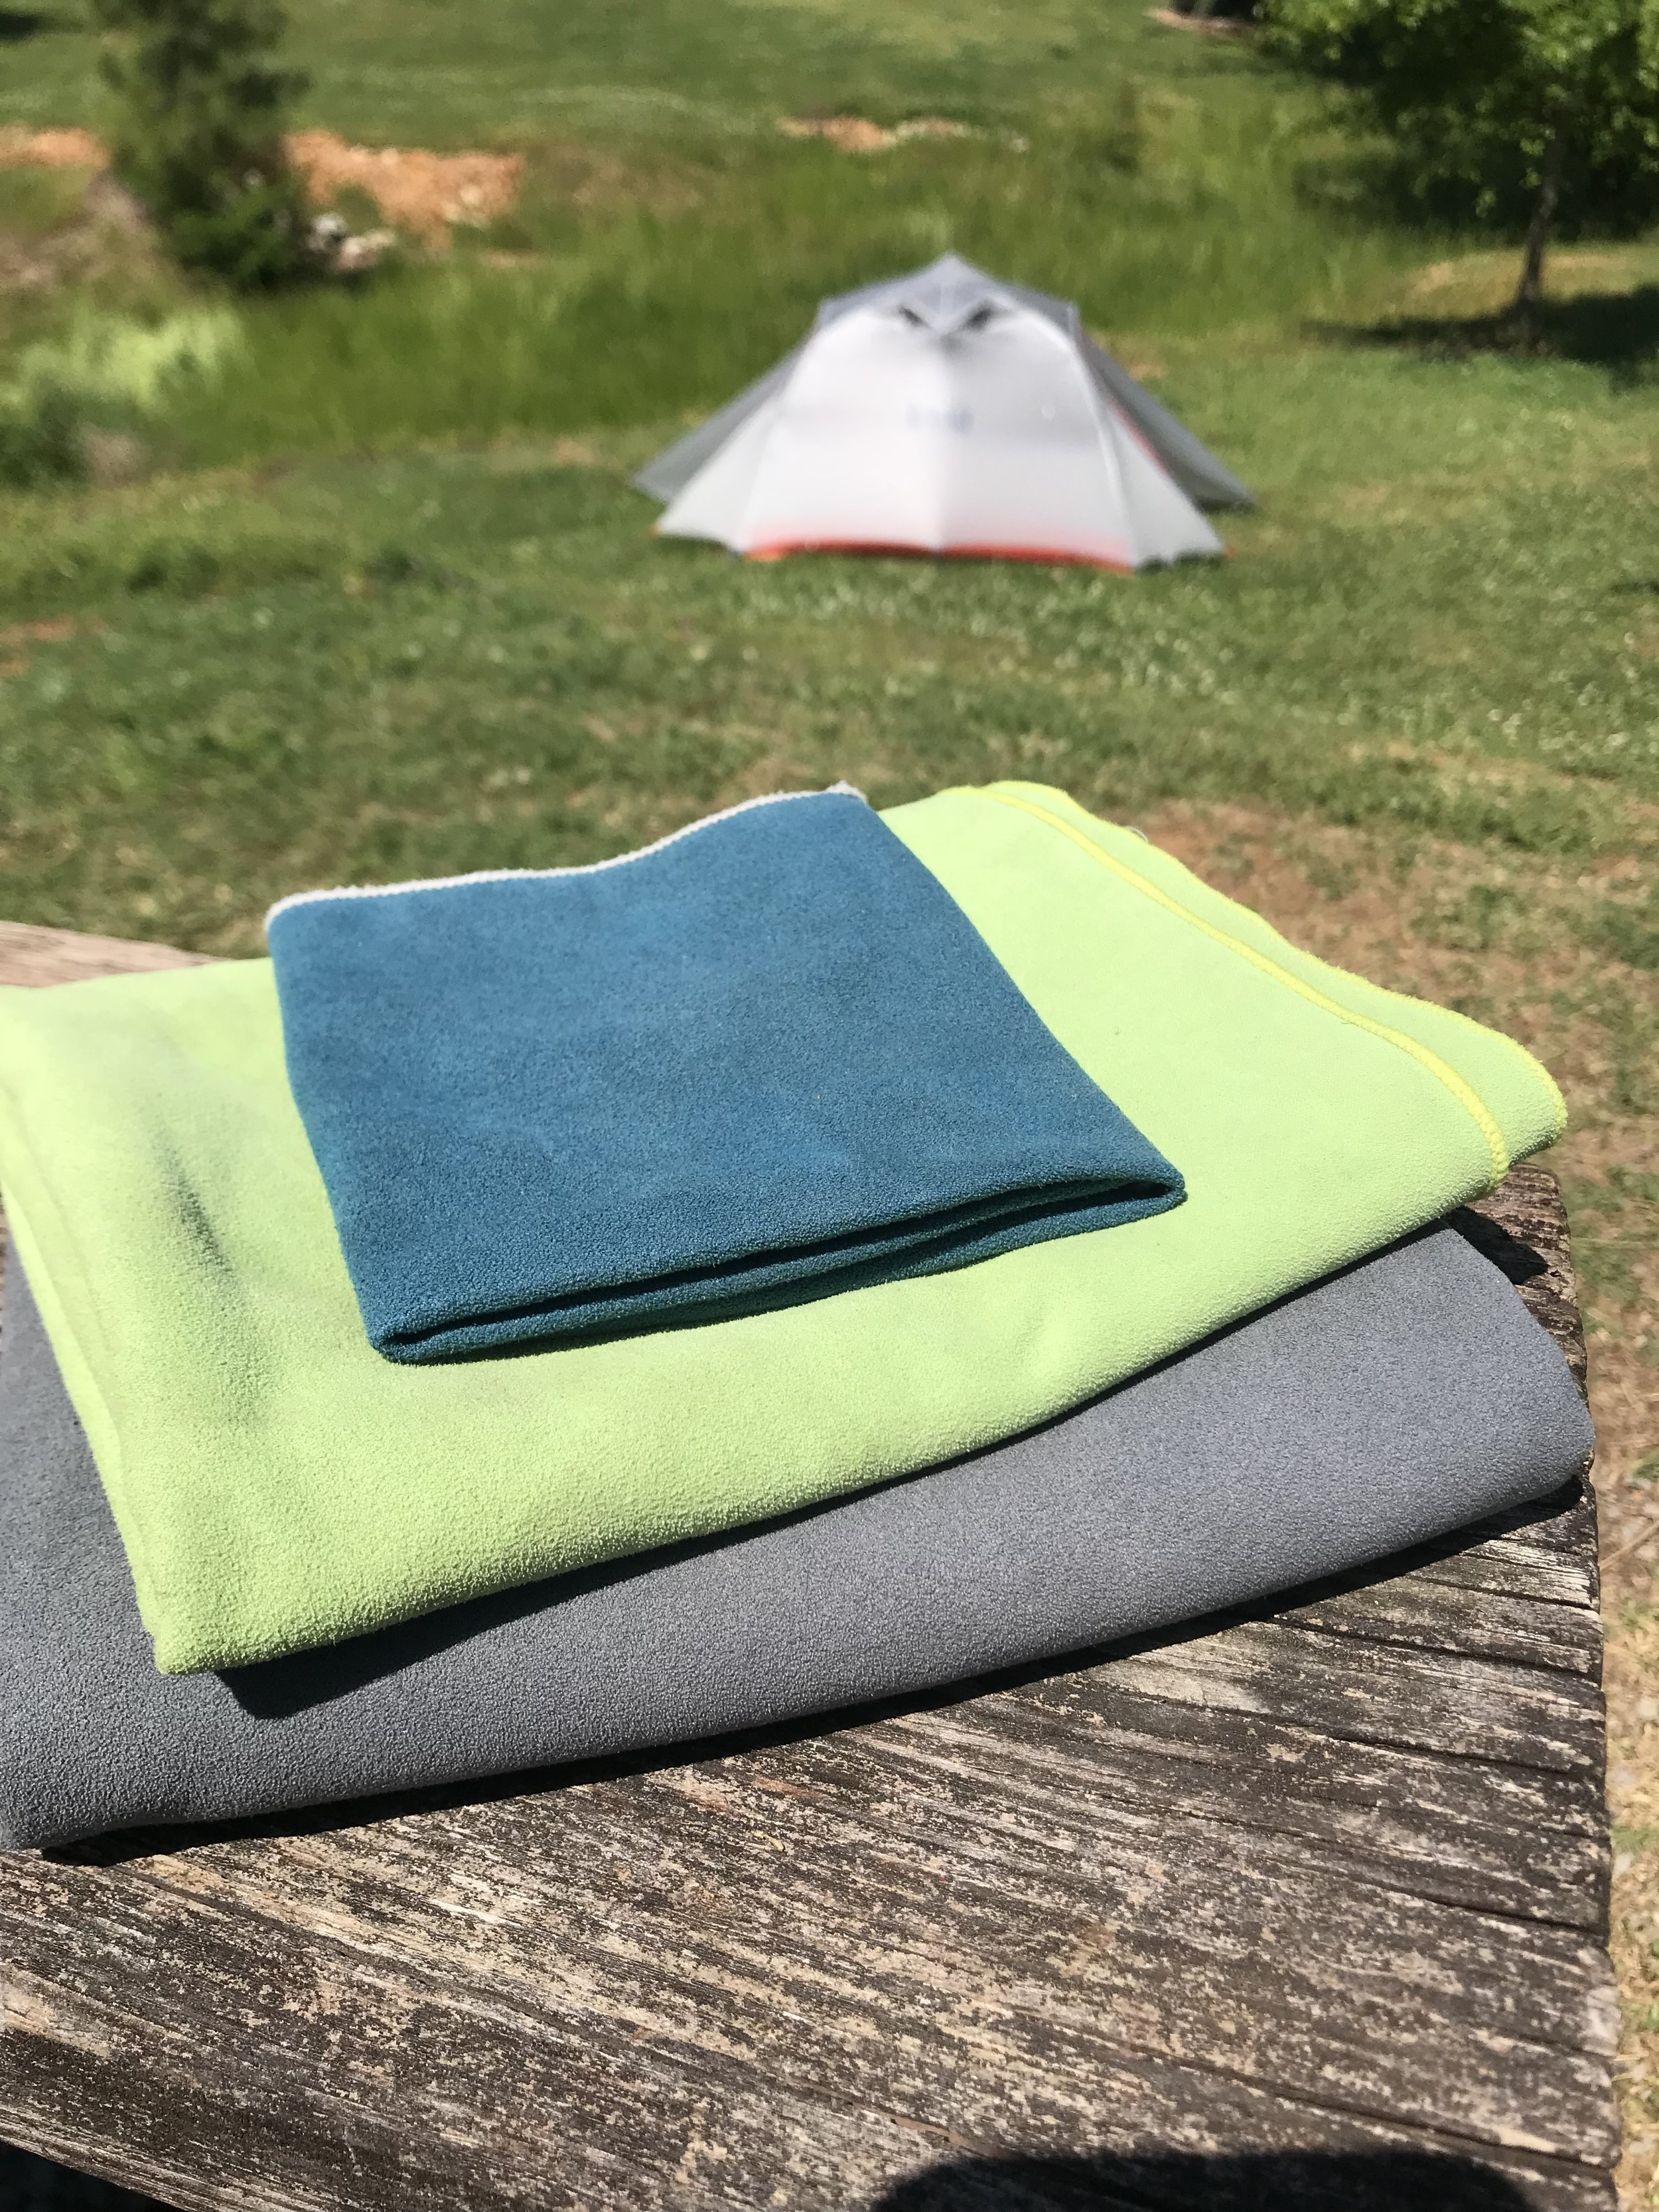 These are great for our family for camping, hiking or just day to day use, especially when living in a tiny space!